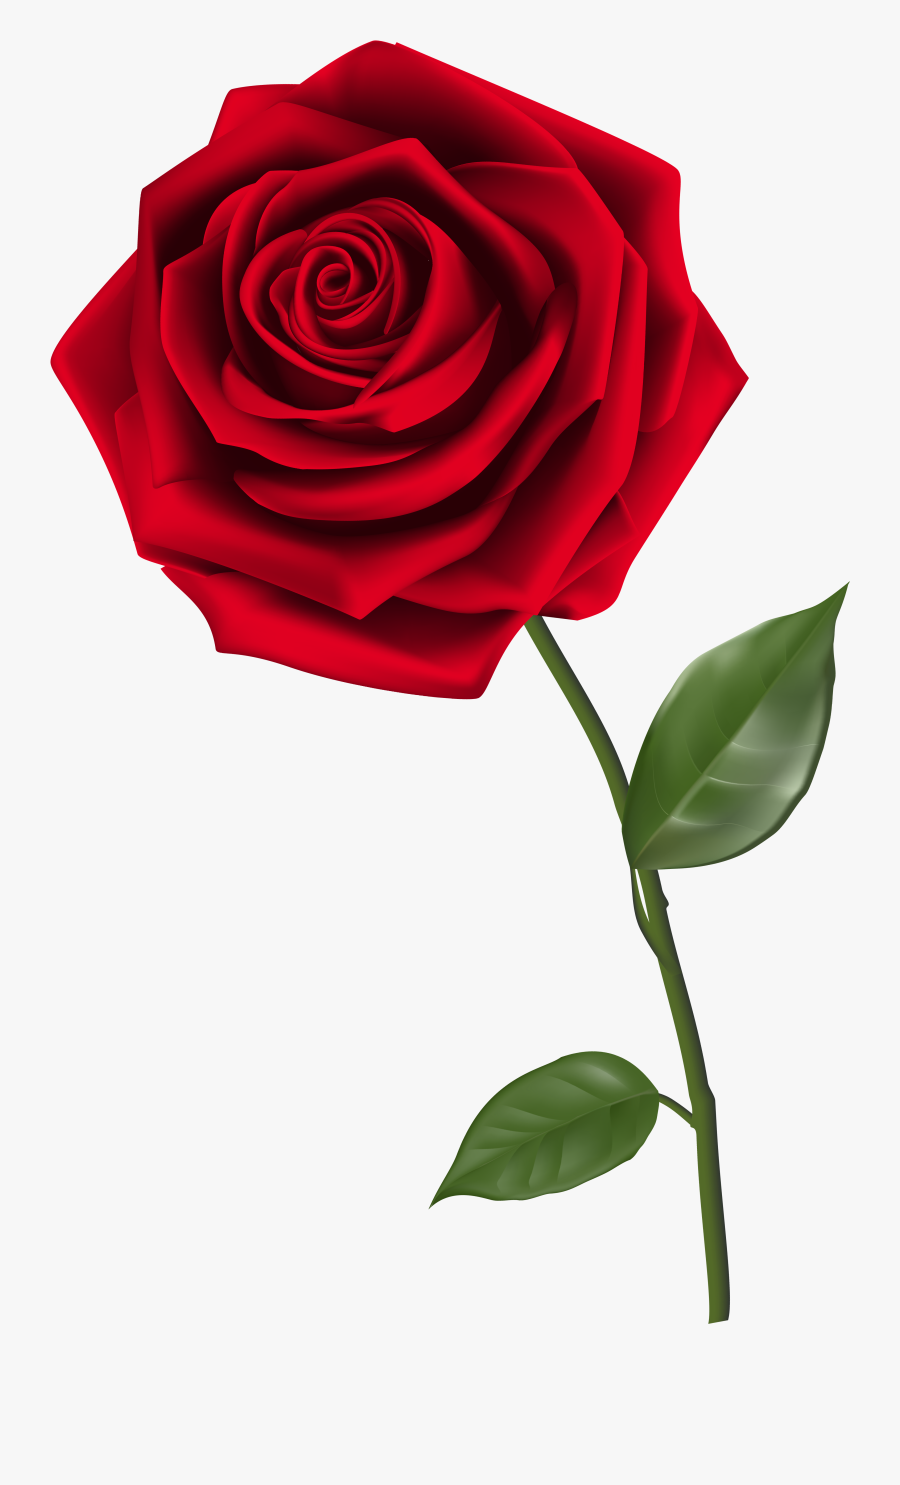 Clipart Roses Clear Background - Red Rose Clear Background, Transparent Clipart